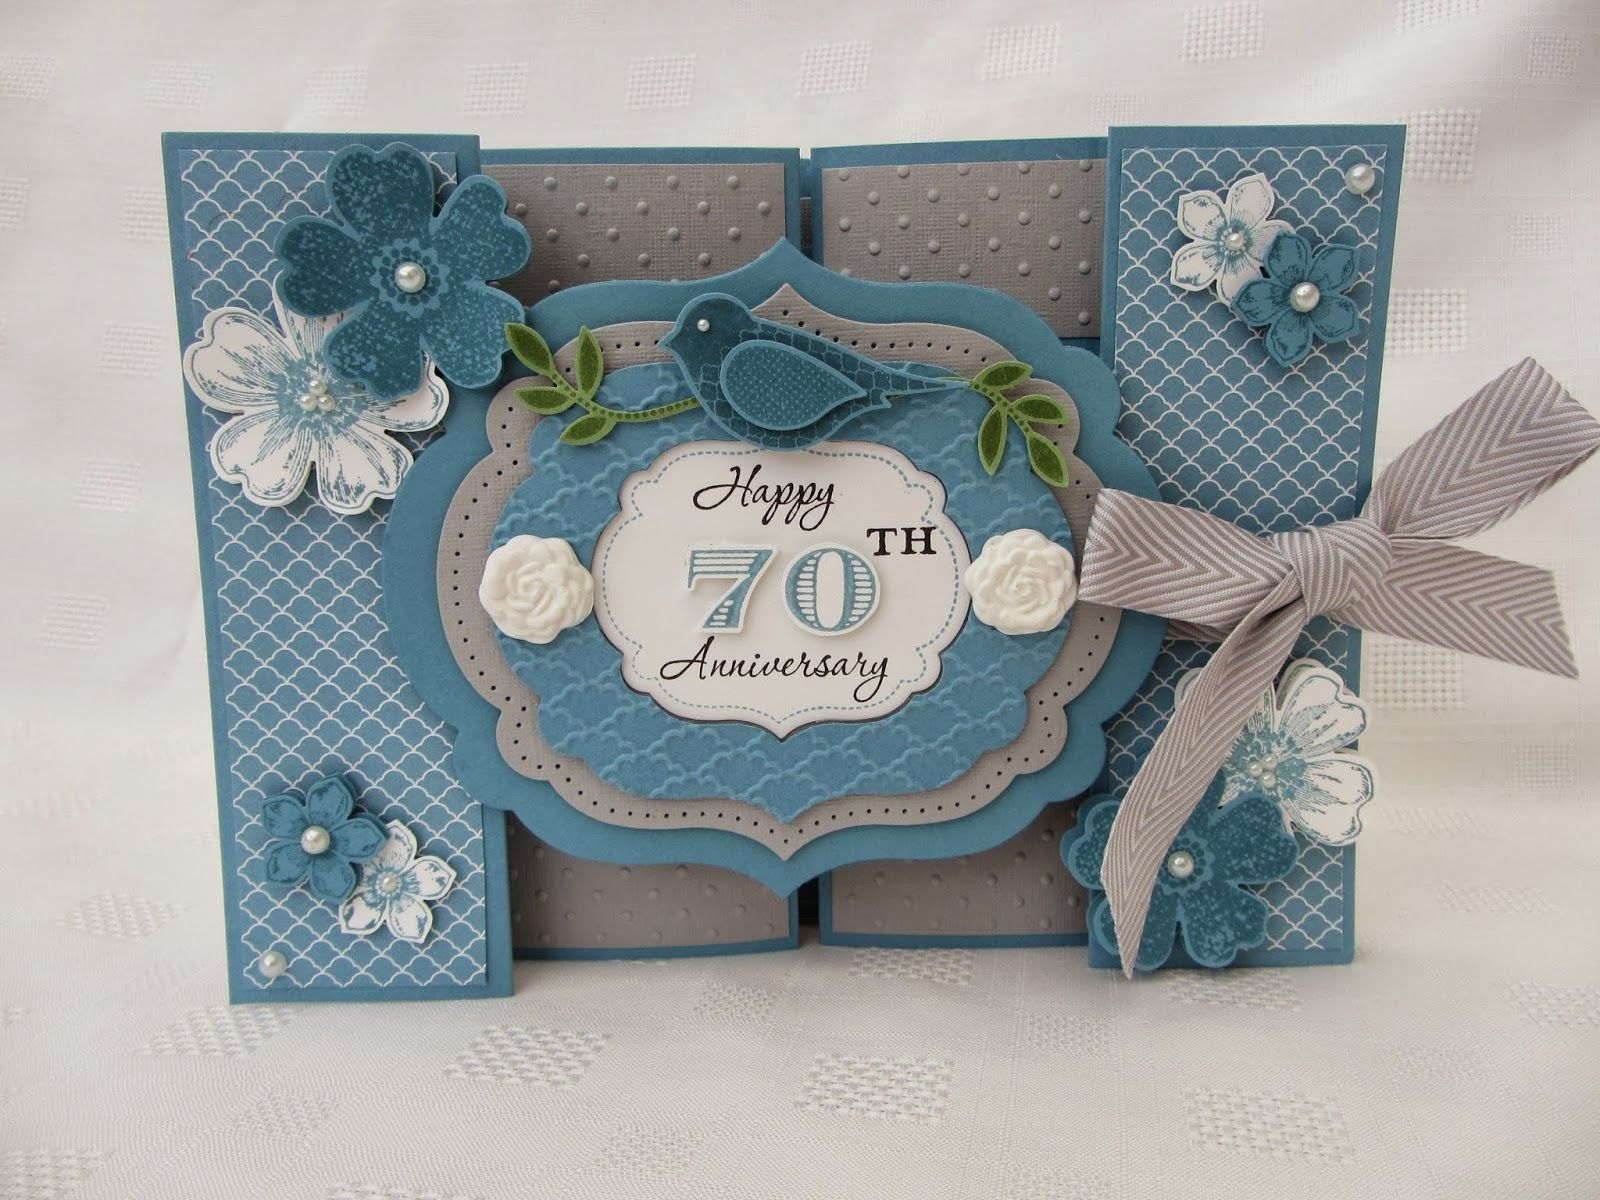 Petite petals trishutter album ready stamping moments cards